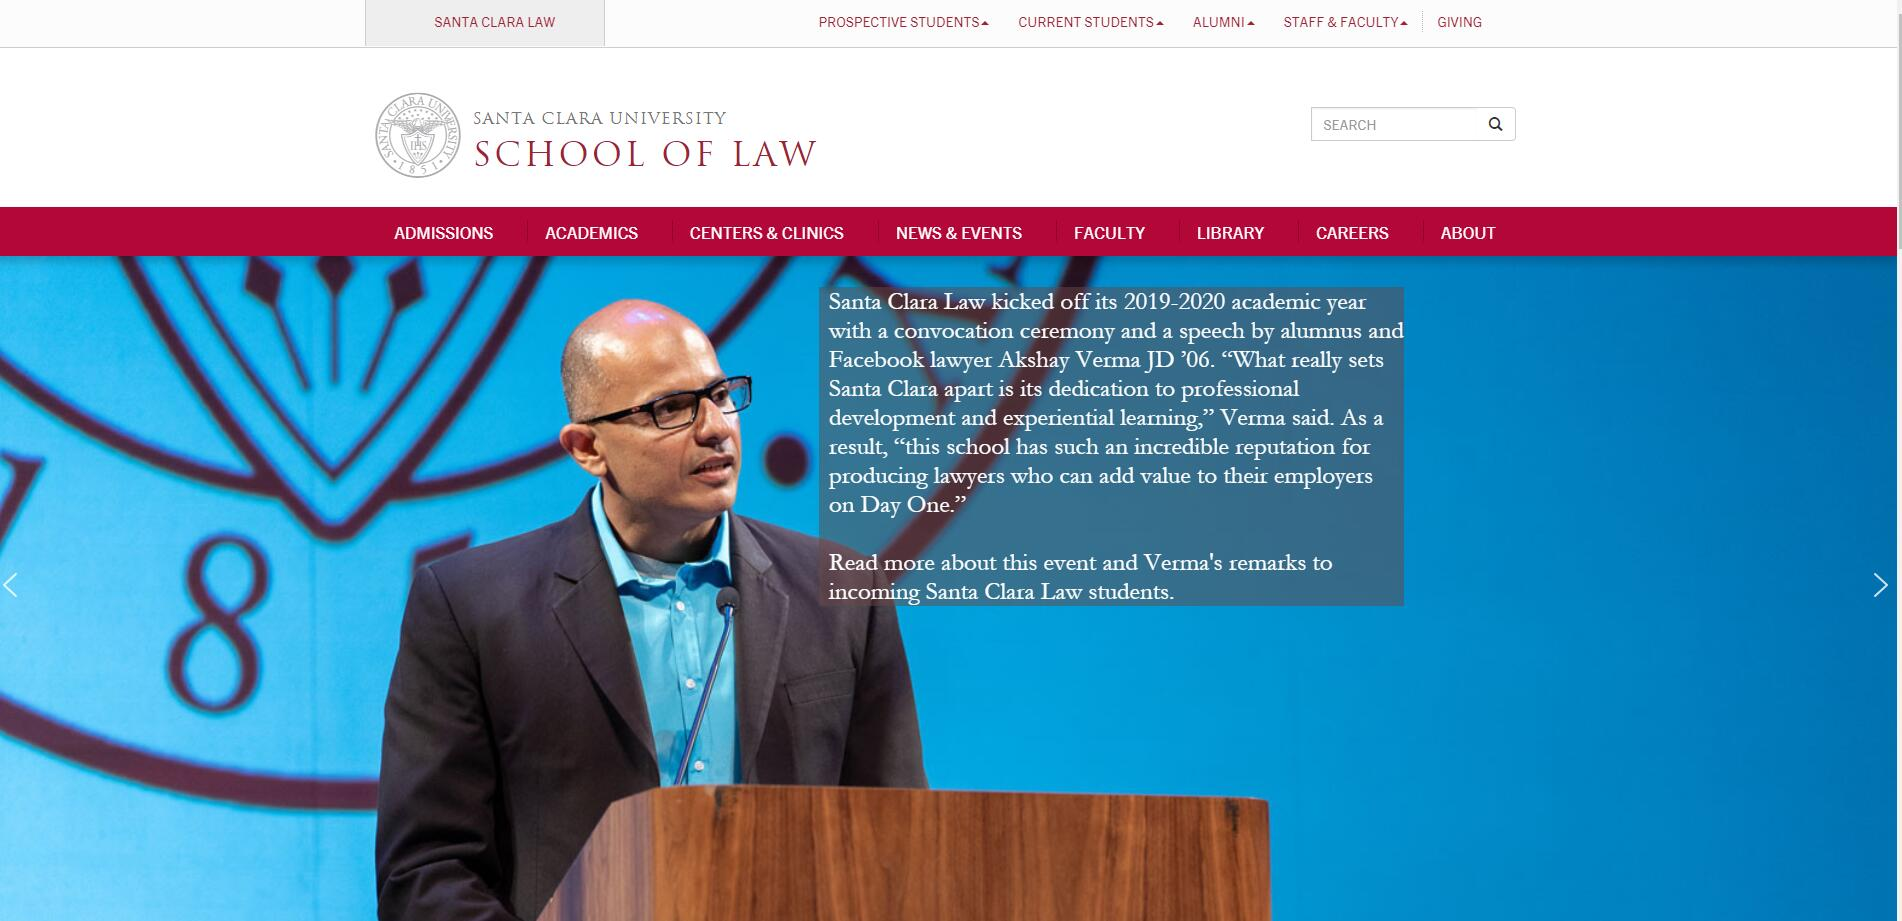 The School of Law at Santa Clara University